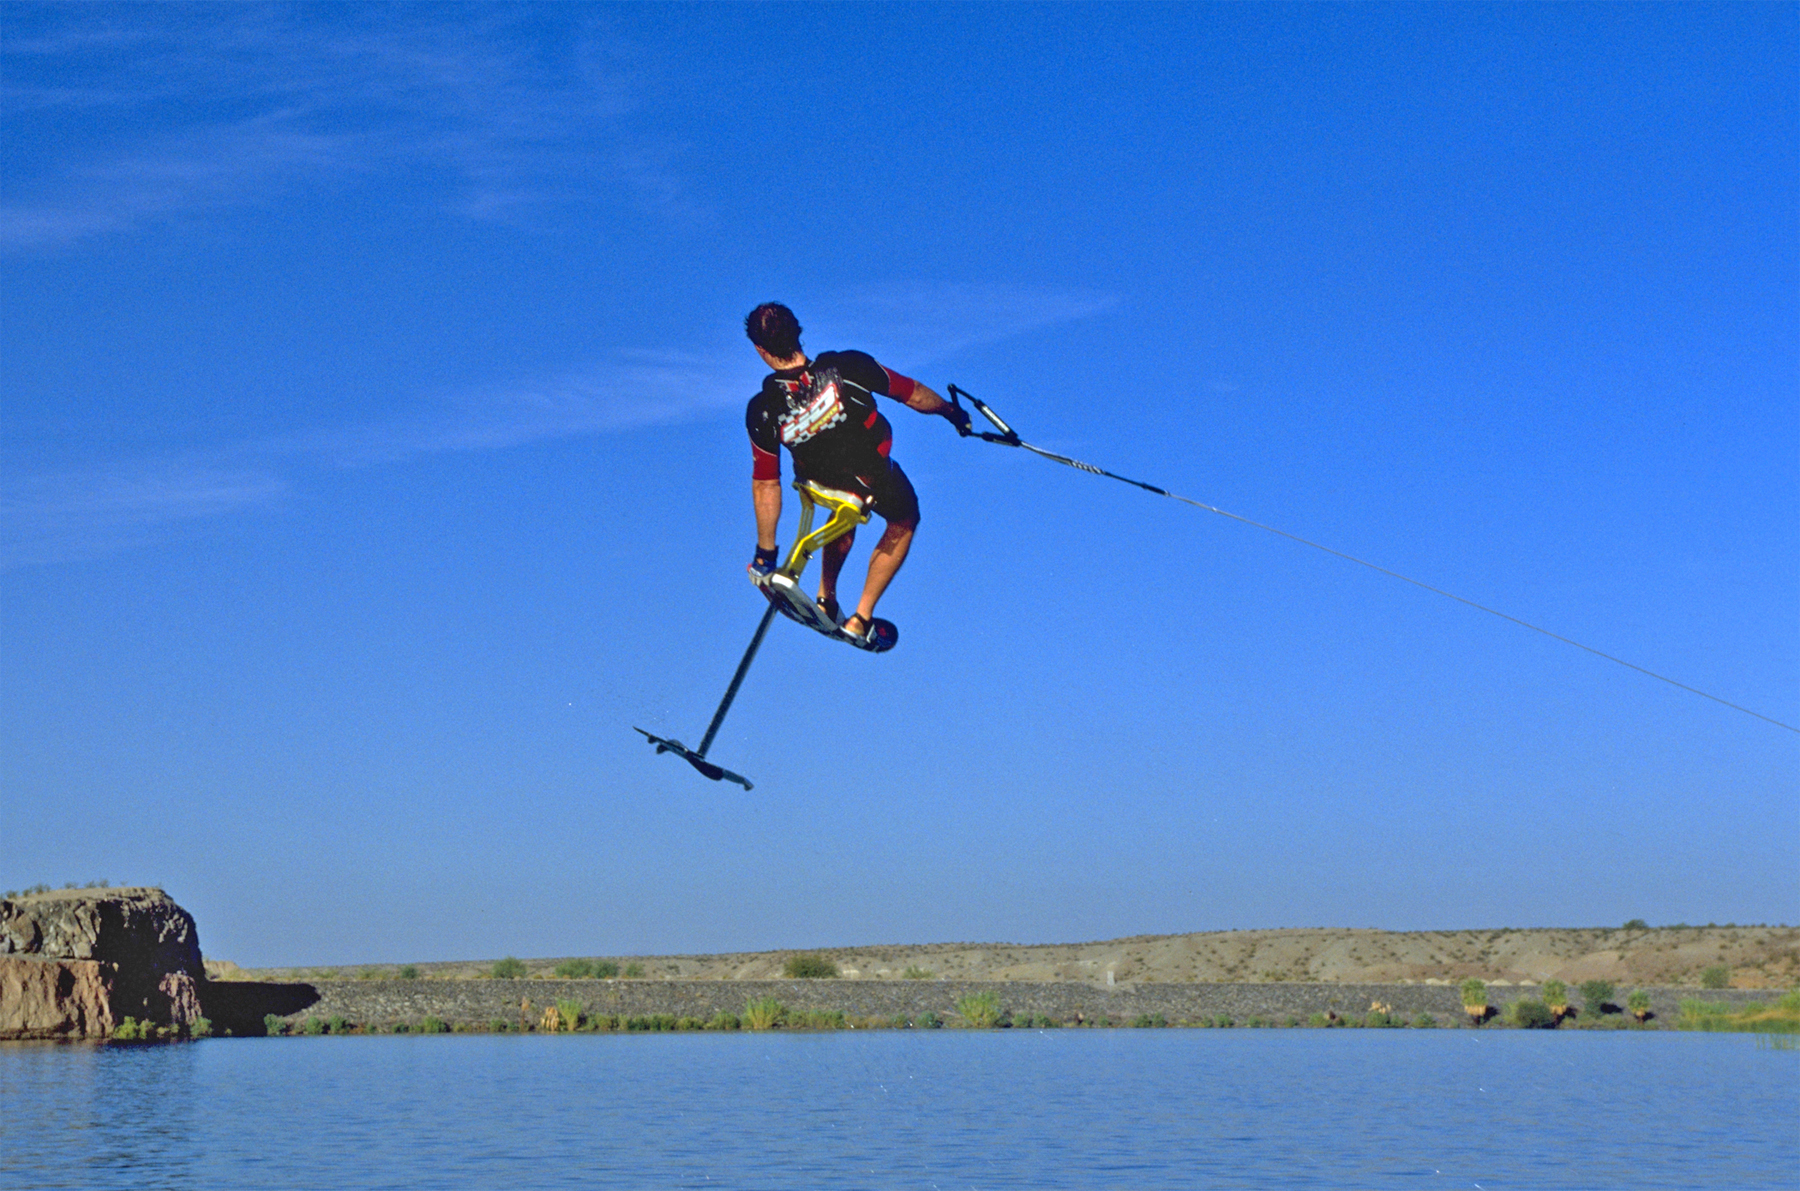 98_TonyKlarich.com_Water_Skiing_Hydrofoil_REARTAILGRAB_Creative_Commons_Free_3MR